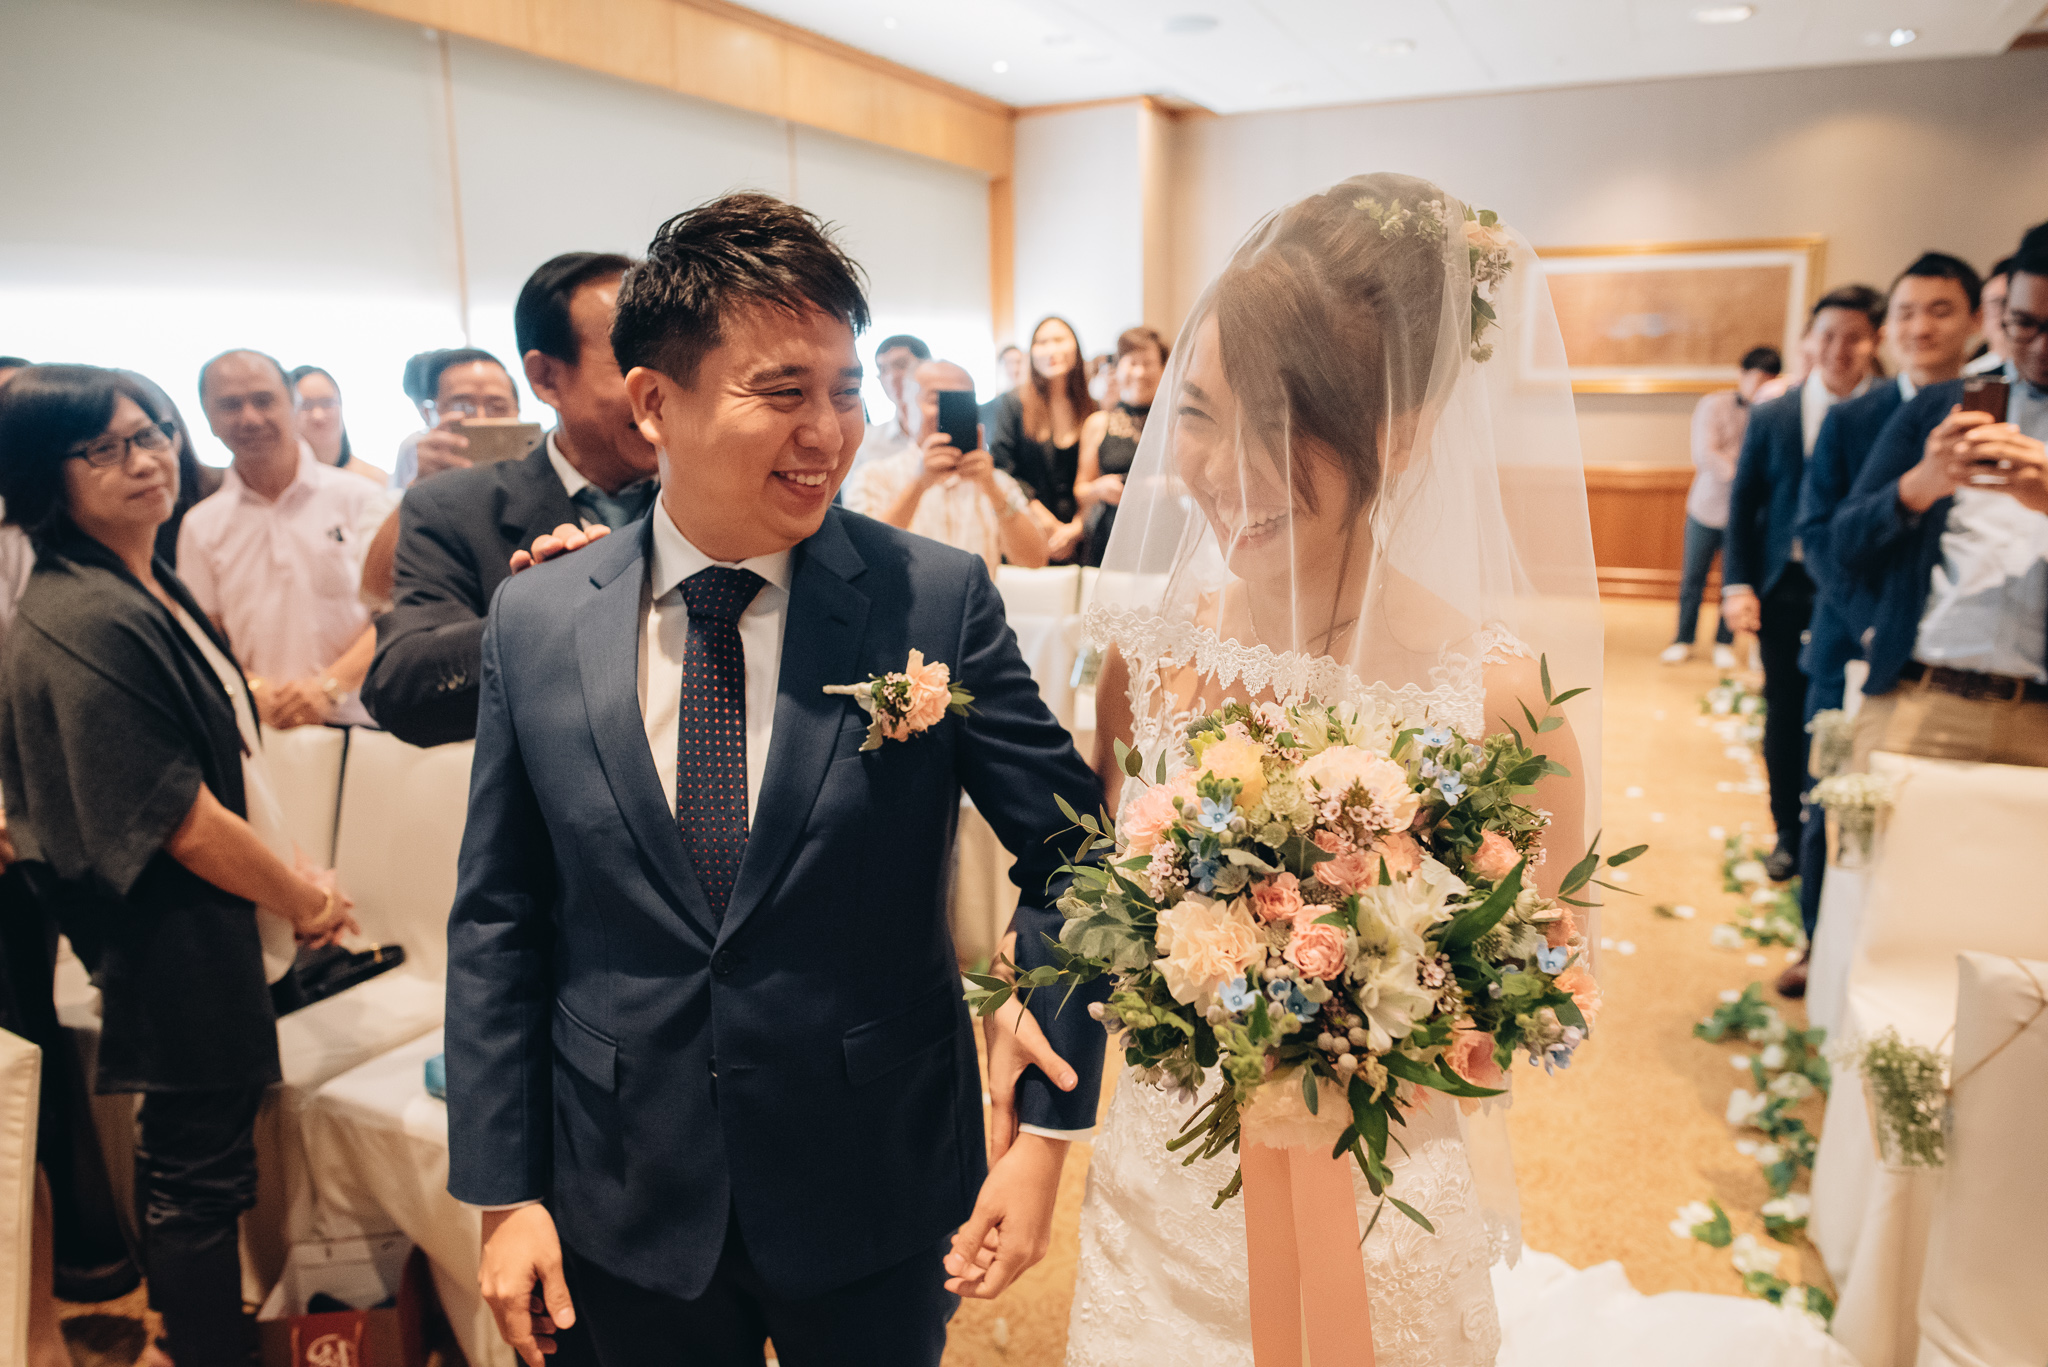 Jocelyn & Chris Wedding Day Highlights (resized for sharing) - 076.jpg